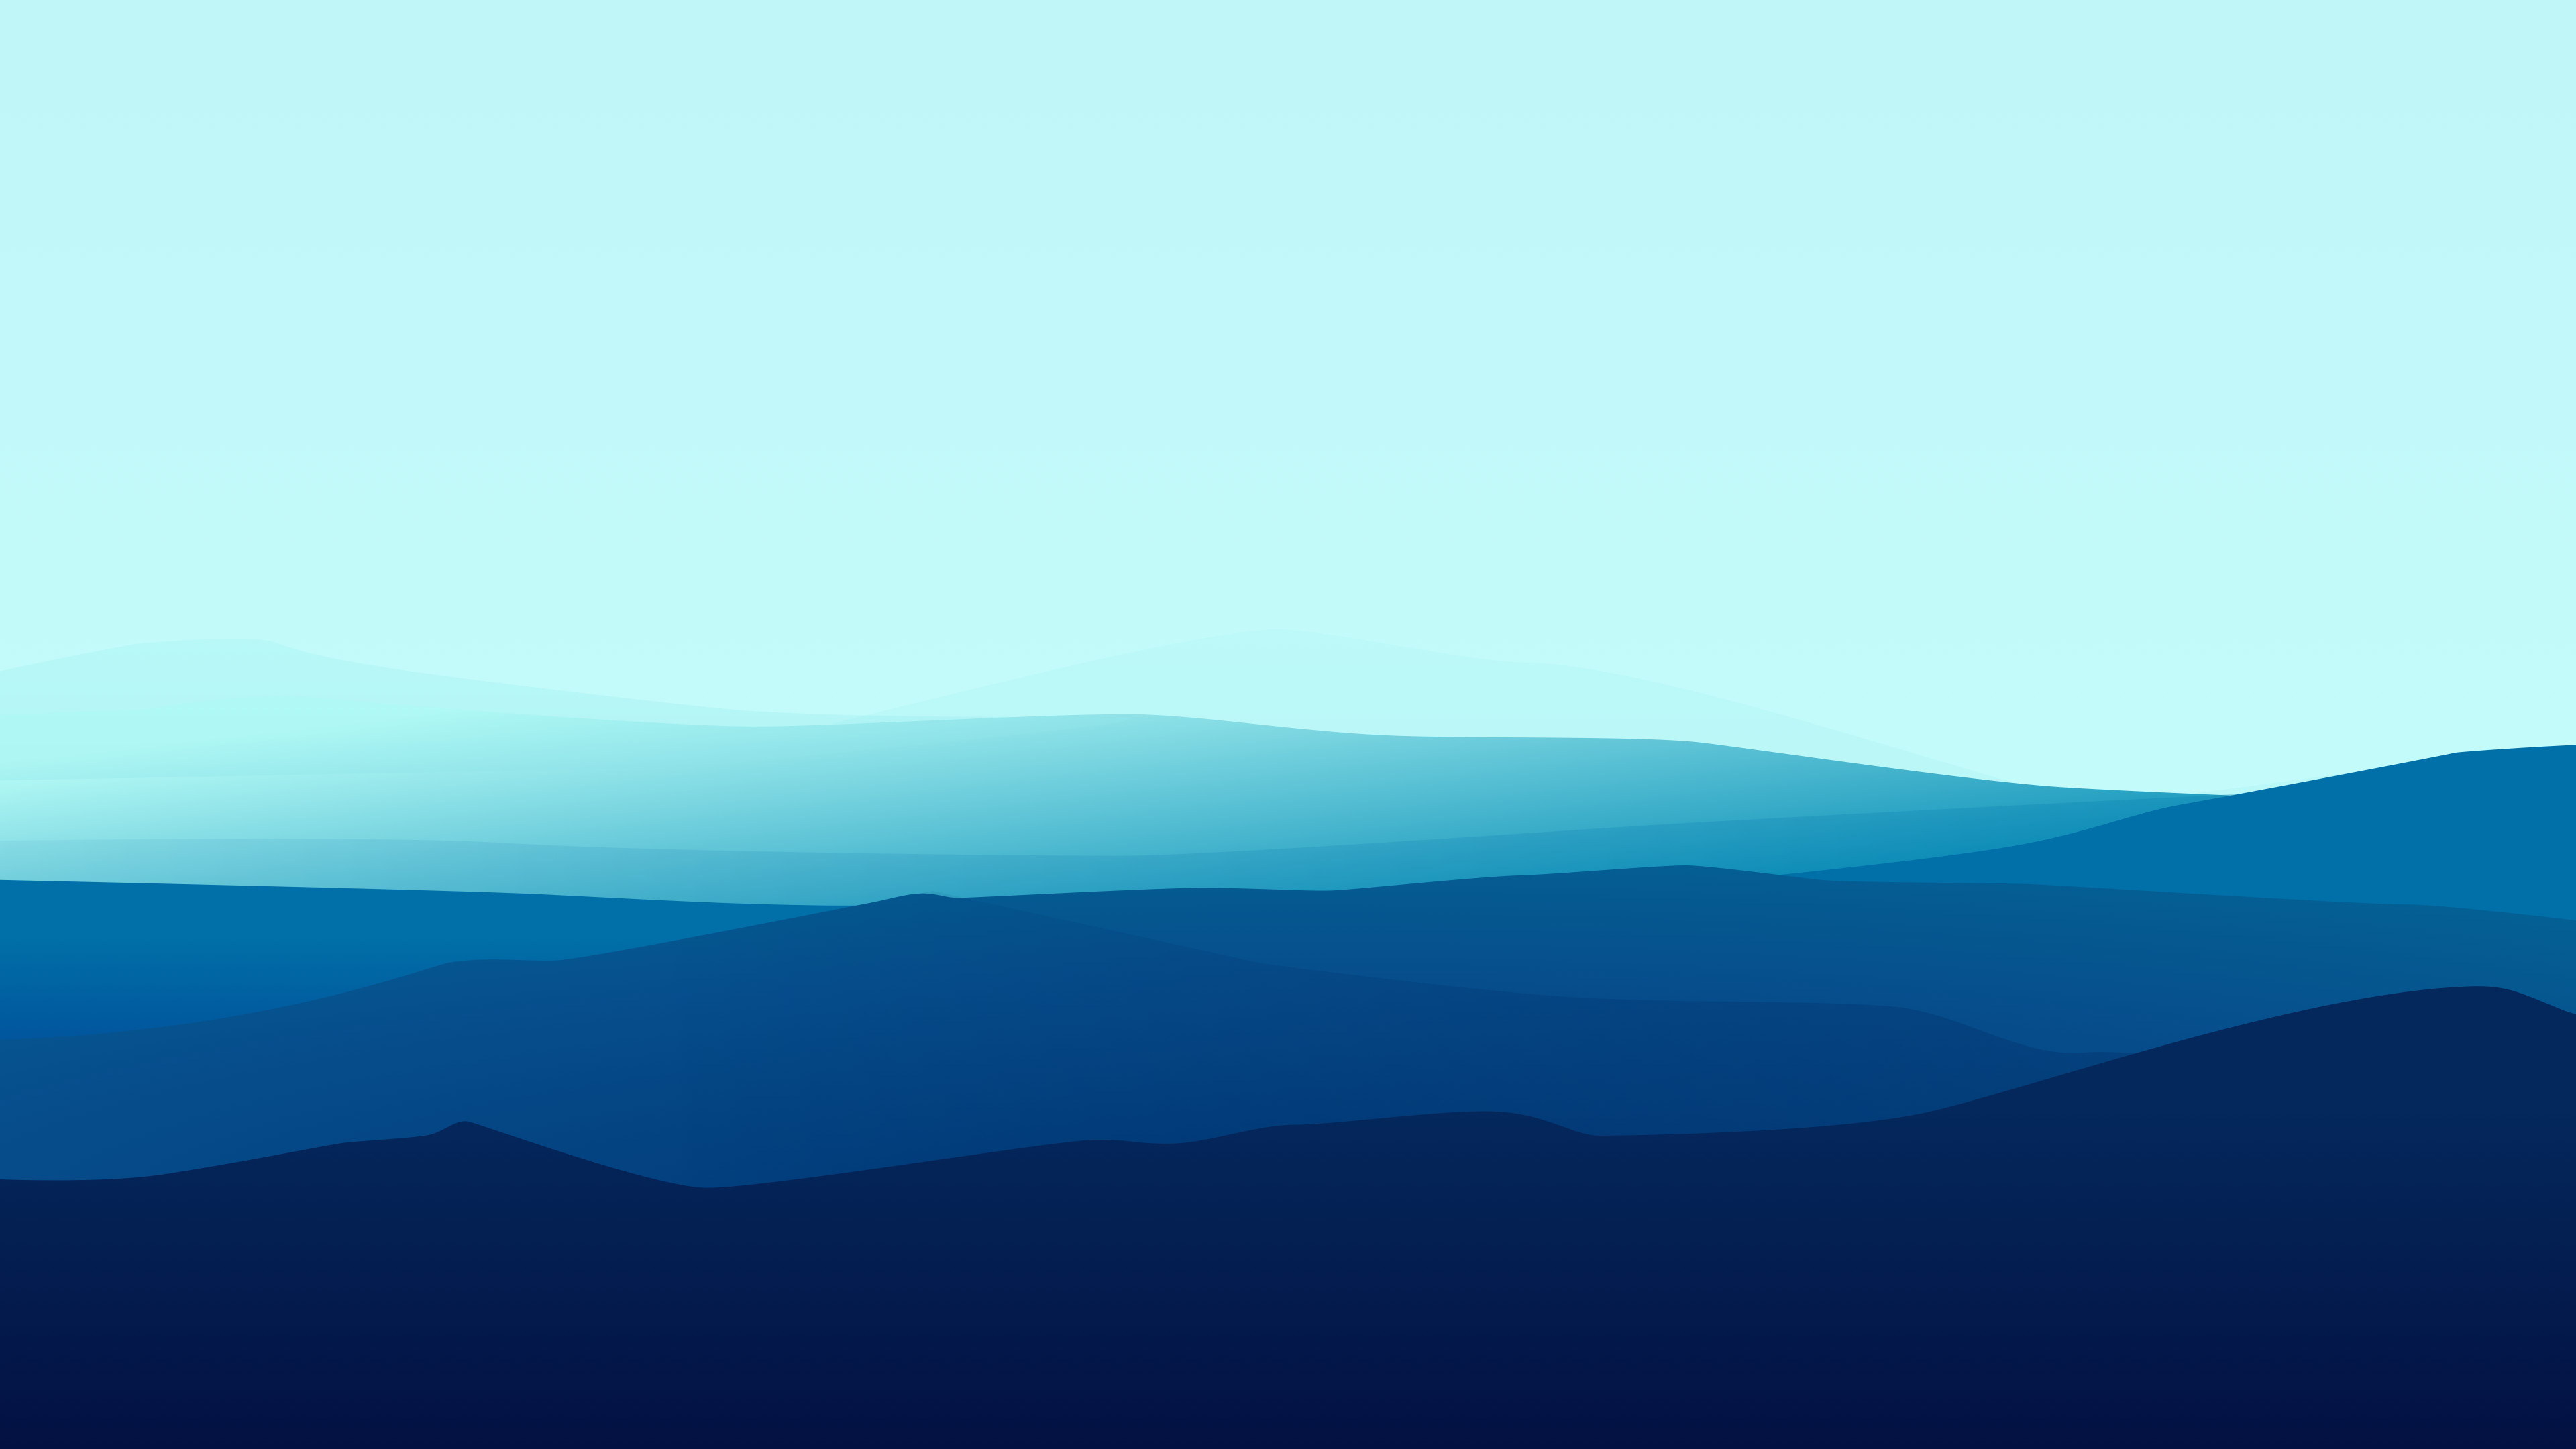 1000+ images about Desktop Wallpapers on Pinterest | Wallpapers, Mountain  wallpaper and Minimal